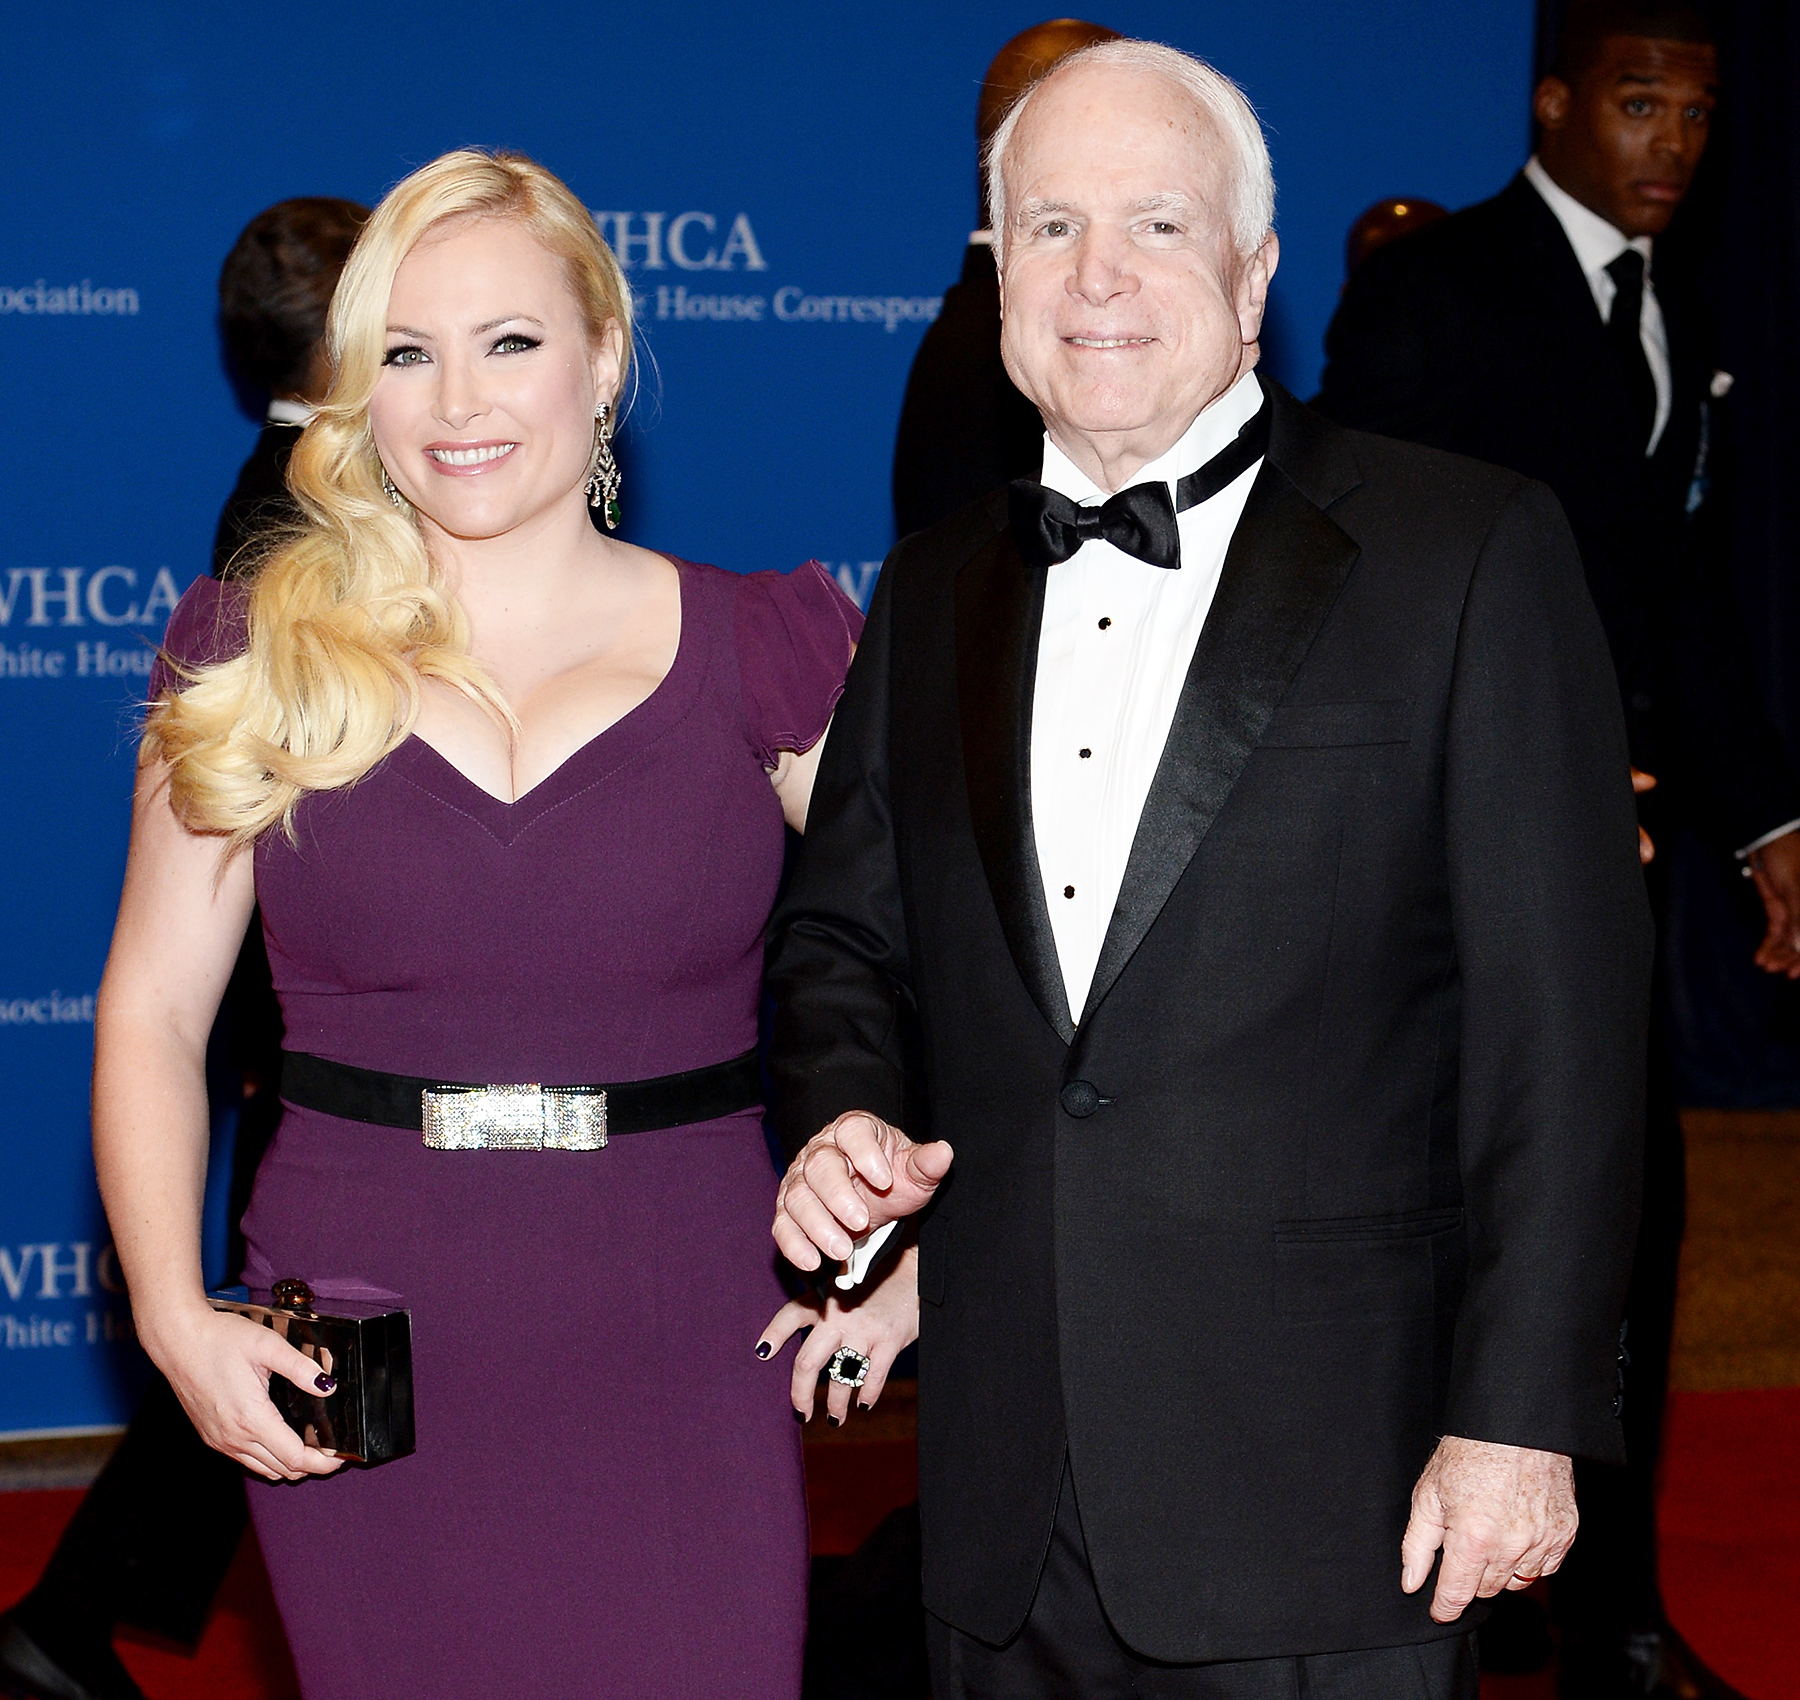 Megan McCain John McCain attend White House Correspondents' Association Dinner